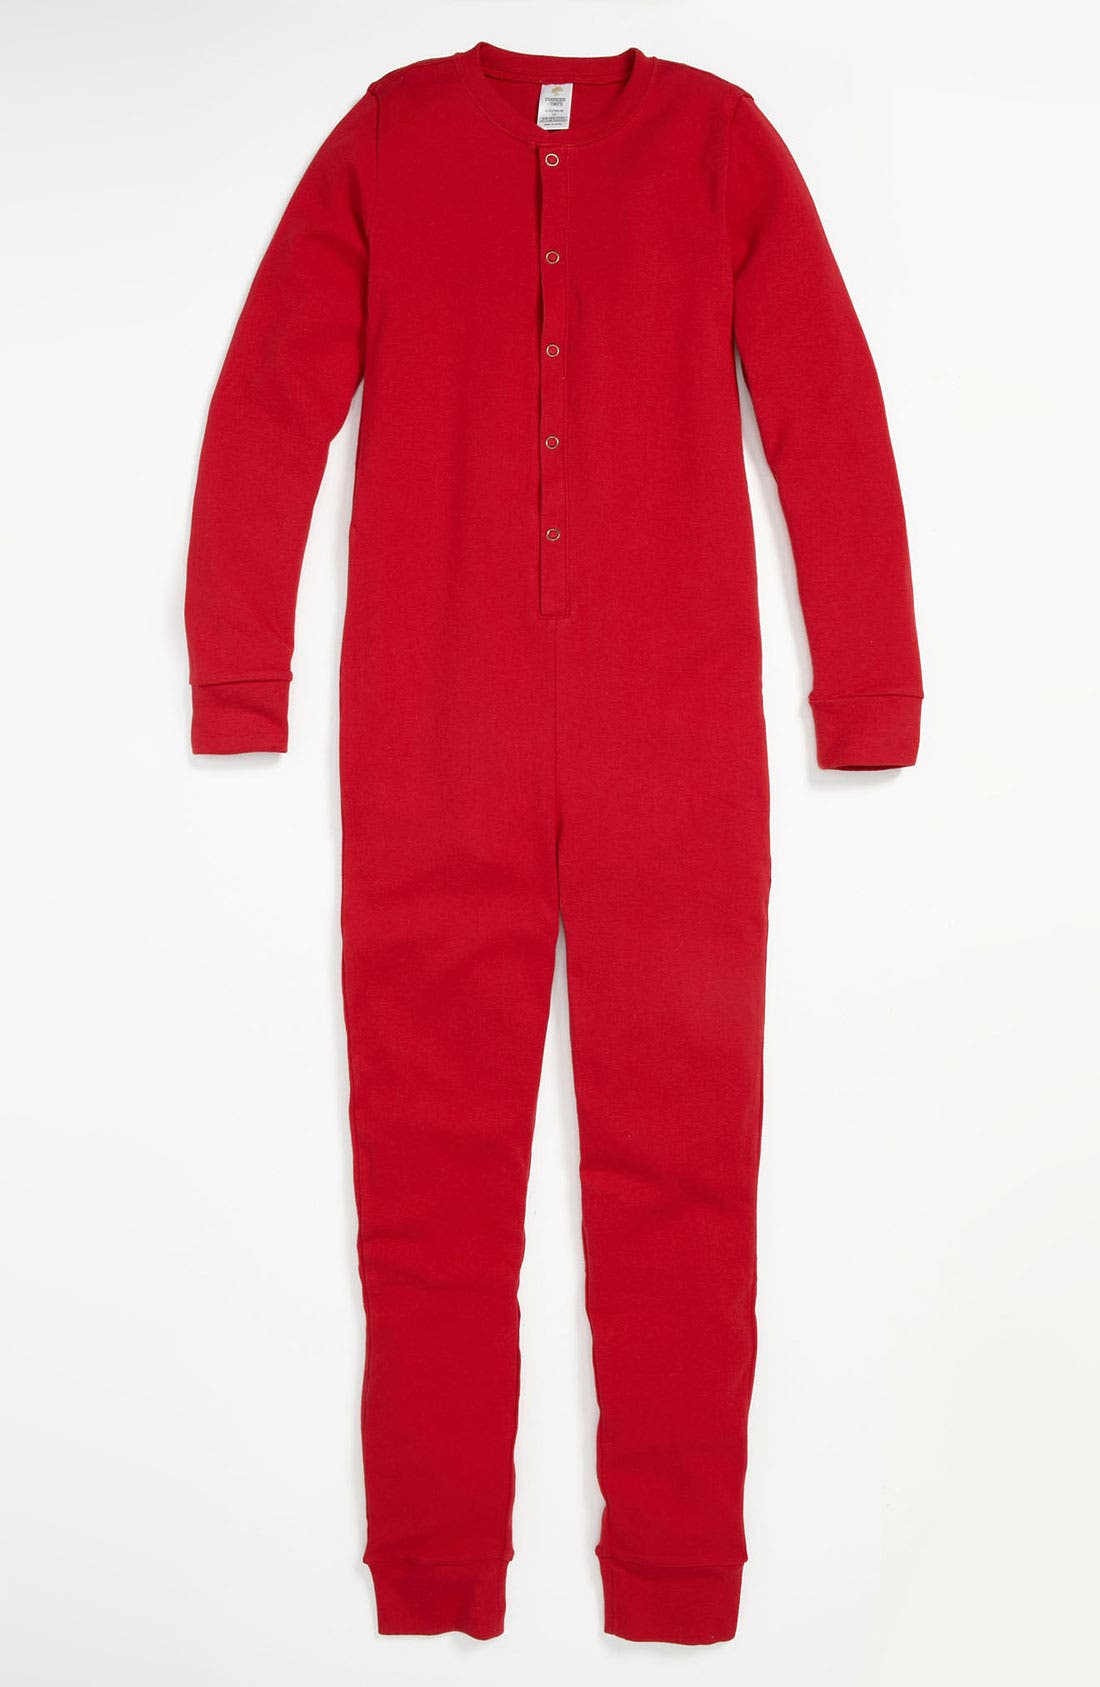 Alternate Image 1 Selected - Tucker + Tate 'Fireside' Fitted Pajamas (Little Boys & Big Boys)